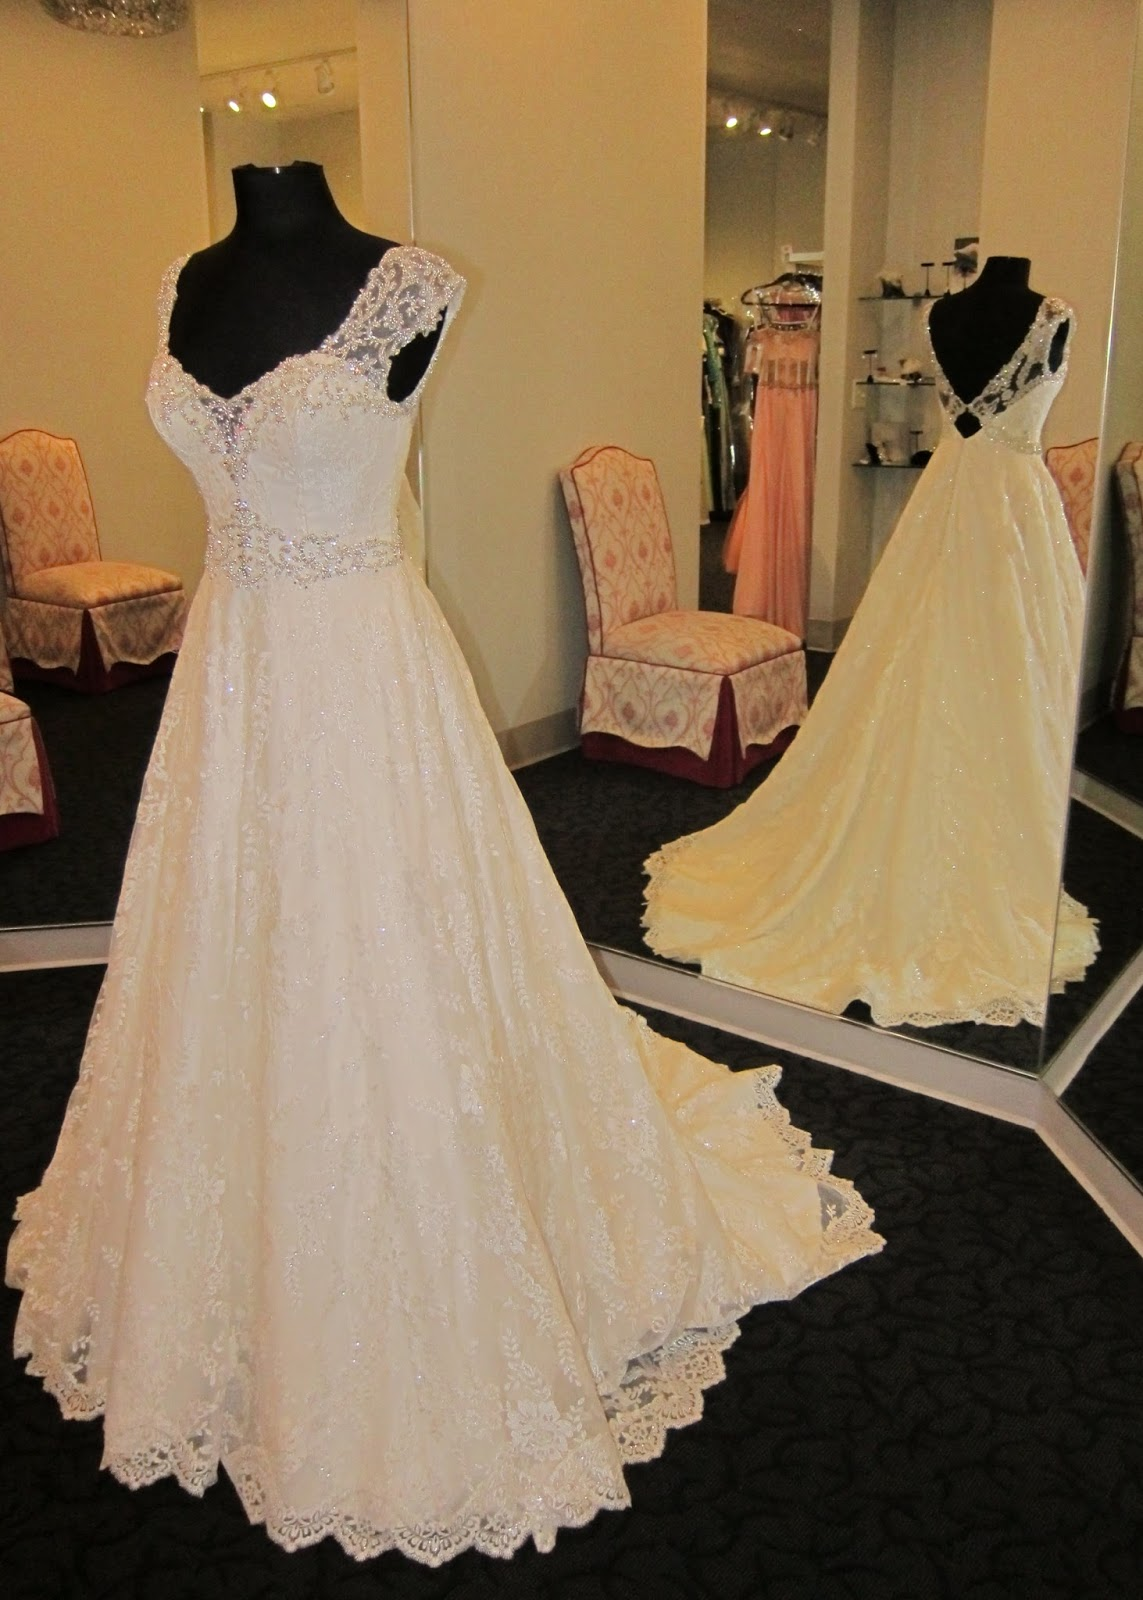 c1c08a2fe2c1 Le Dress Boutique Is An Appointment Only While You Can Walk In To Browse  Anytime Try